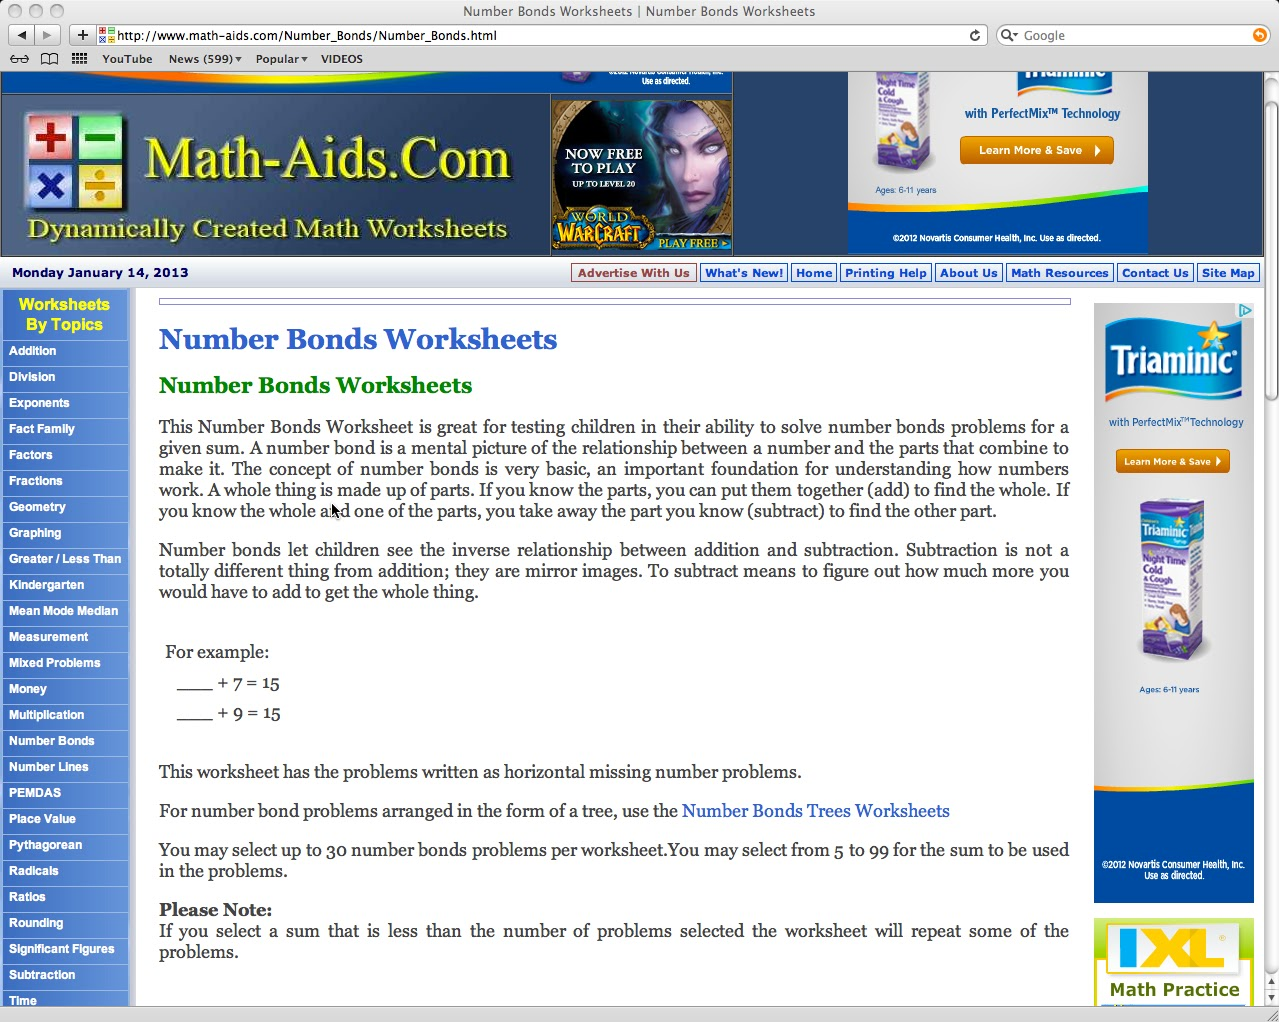 worksheet Math Aids Algebra place value practice sheets subtracting fractions from whole math aids multi step algebra equations 1 valuehtml